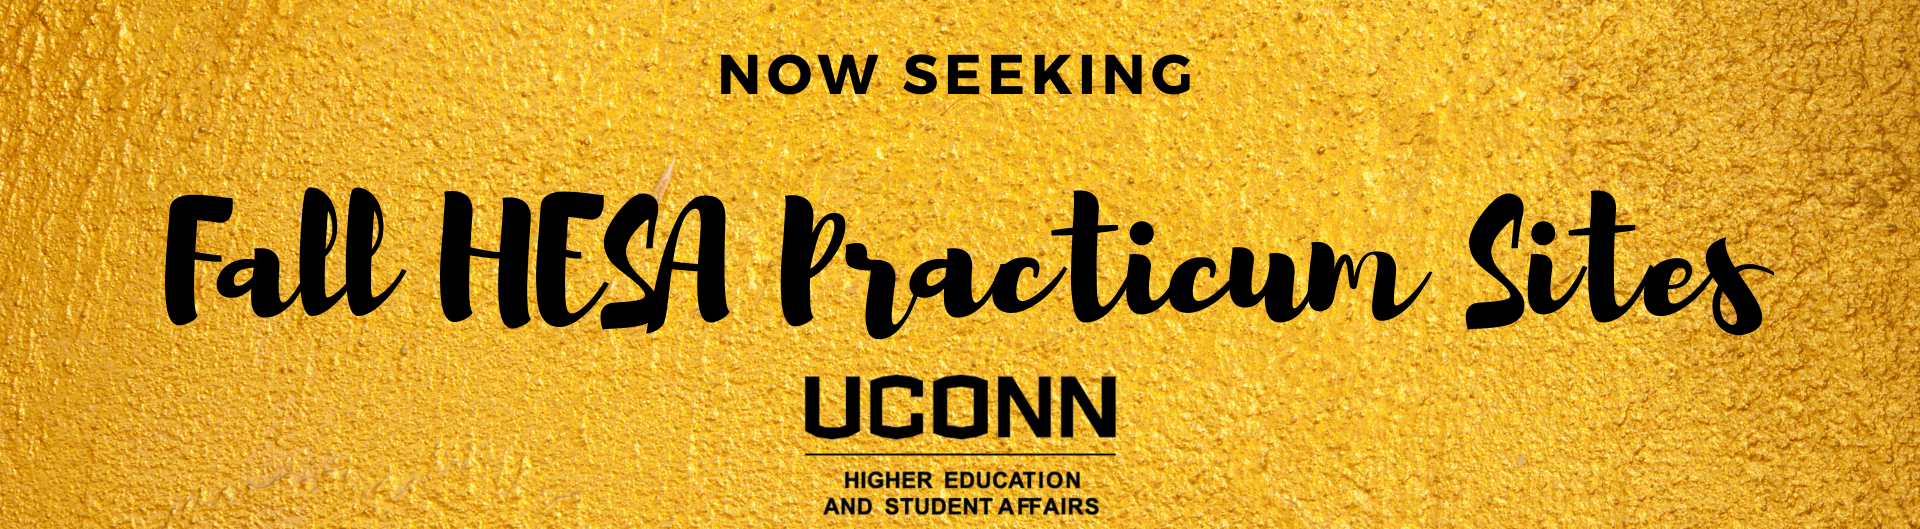 Now Seeking: Fall HESA Practicum Sites